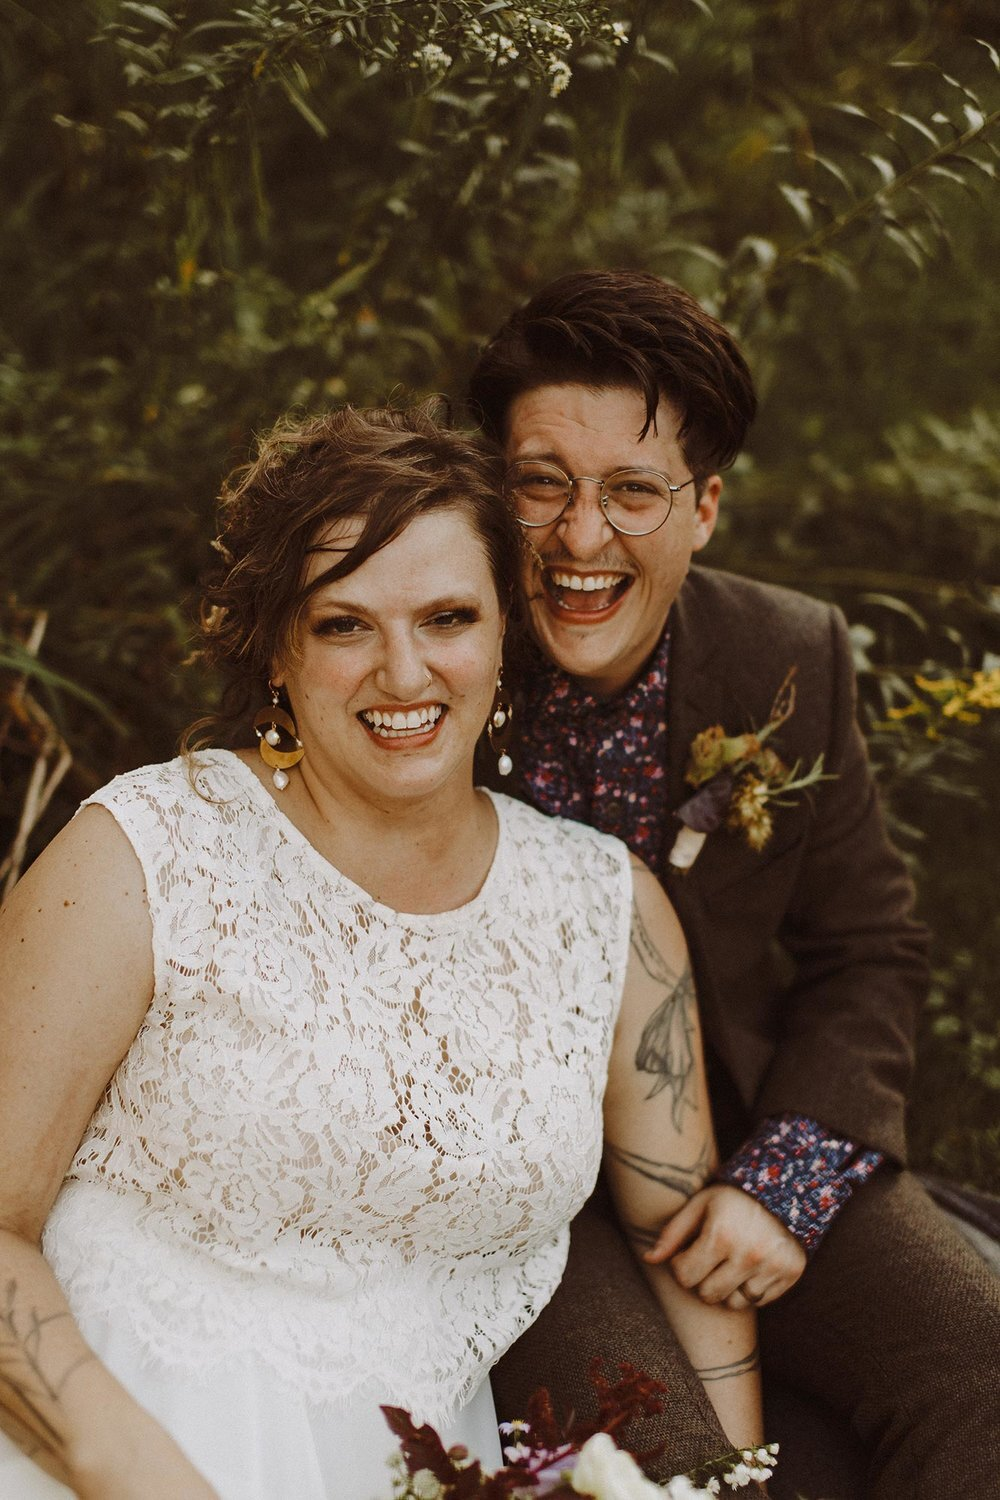 Newlyweds embrace and smile after wedding ceremony at campsite in Spring Green, Wisconsin